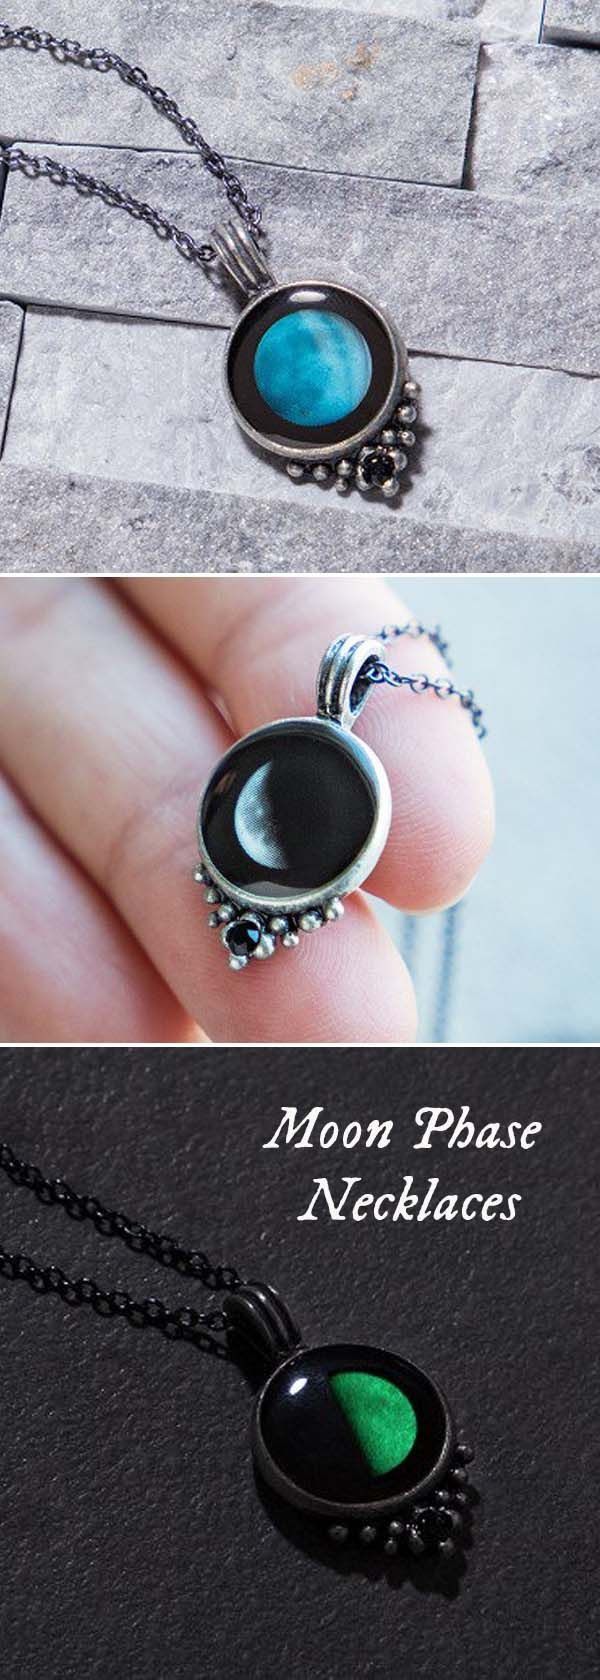 Maybe you believe the moon influences our personalities. Or perhaps you simply like gazing up at this mysterious glowing sphere. Either way, Moonglow's moon phase necklace is a meaningful way to commemorate important dates or events.